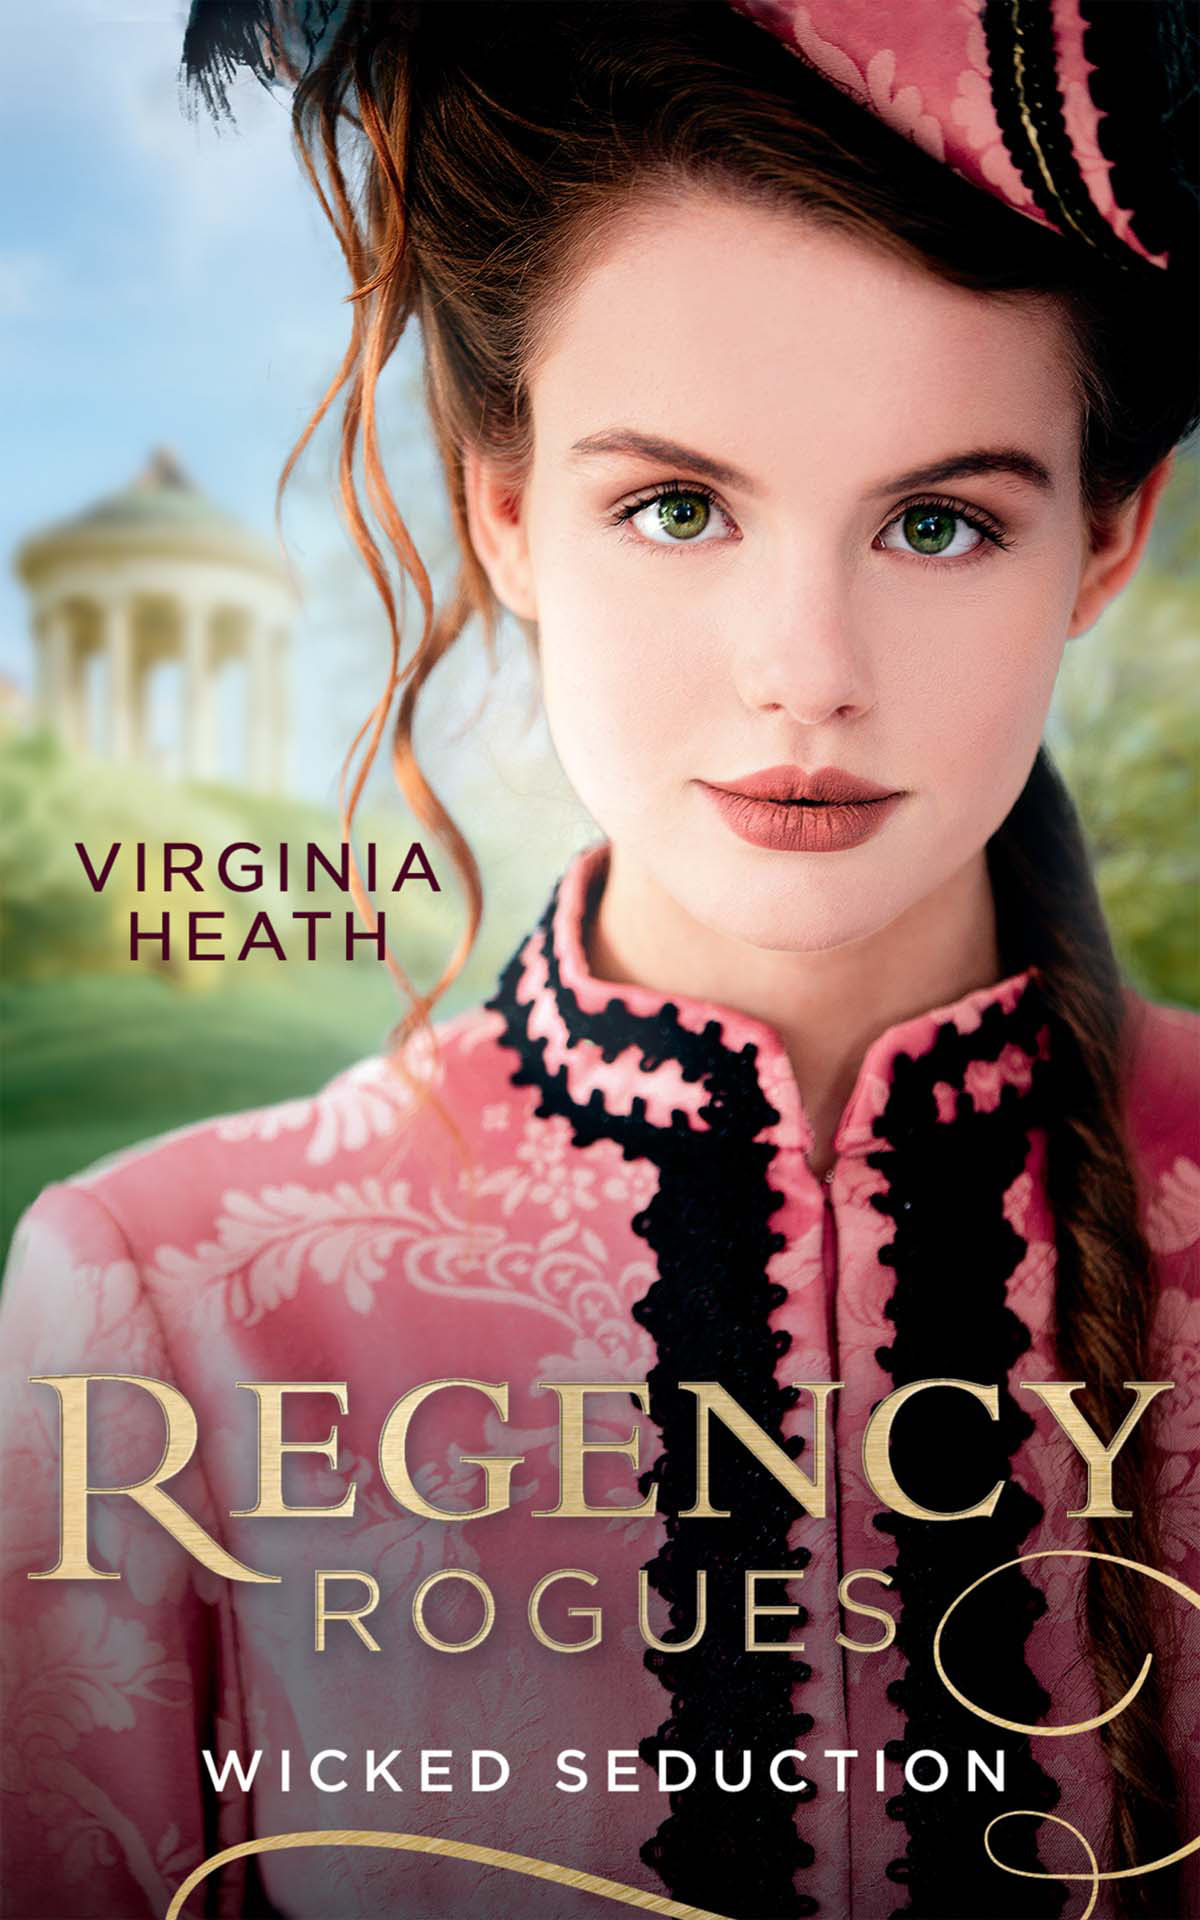 Virginia Heath Regency Rogues: Wicked Seduction: Her Enemy at the Altar / That Despicable Rogue virginia heath her enemy at the altar